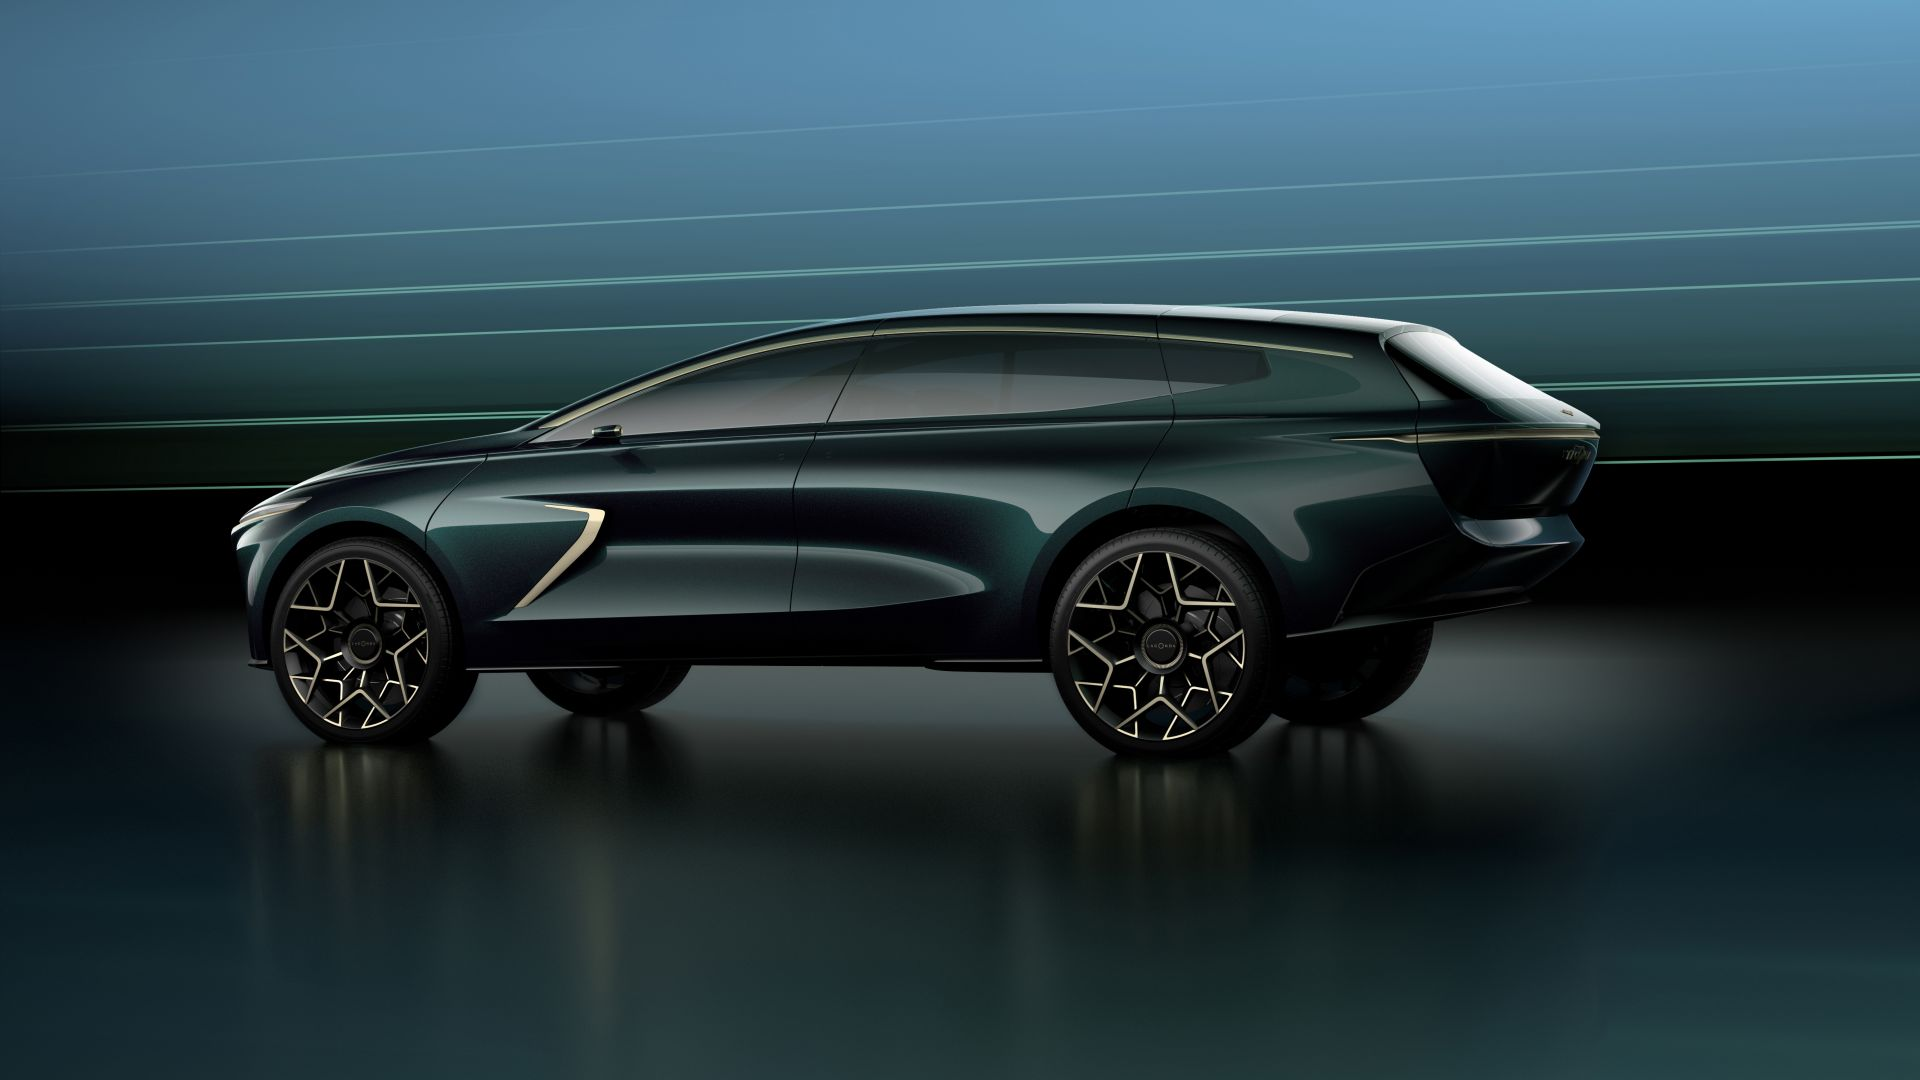 Lagonda All-Terrain, electric cars, Geneva Motor Show 2019, 5K (horizontal)